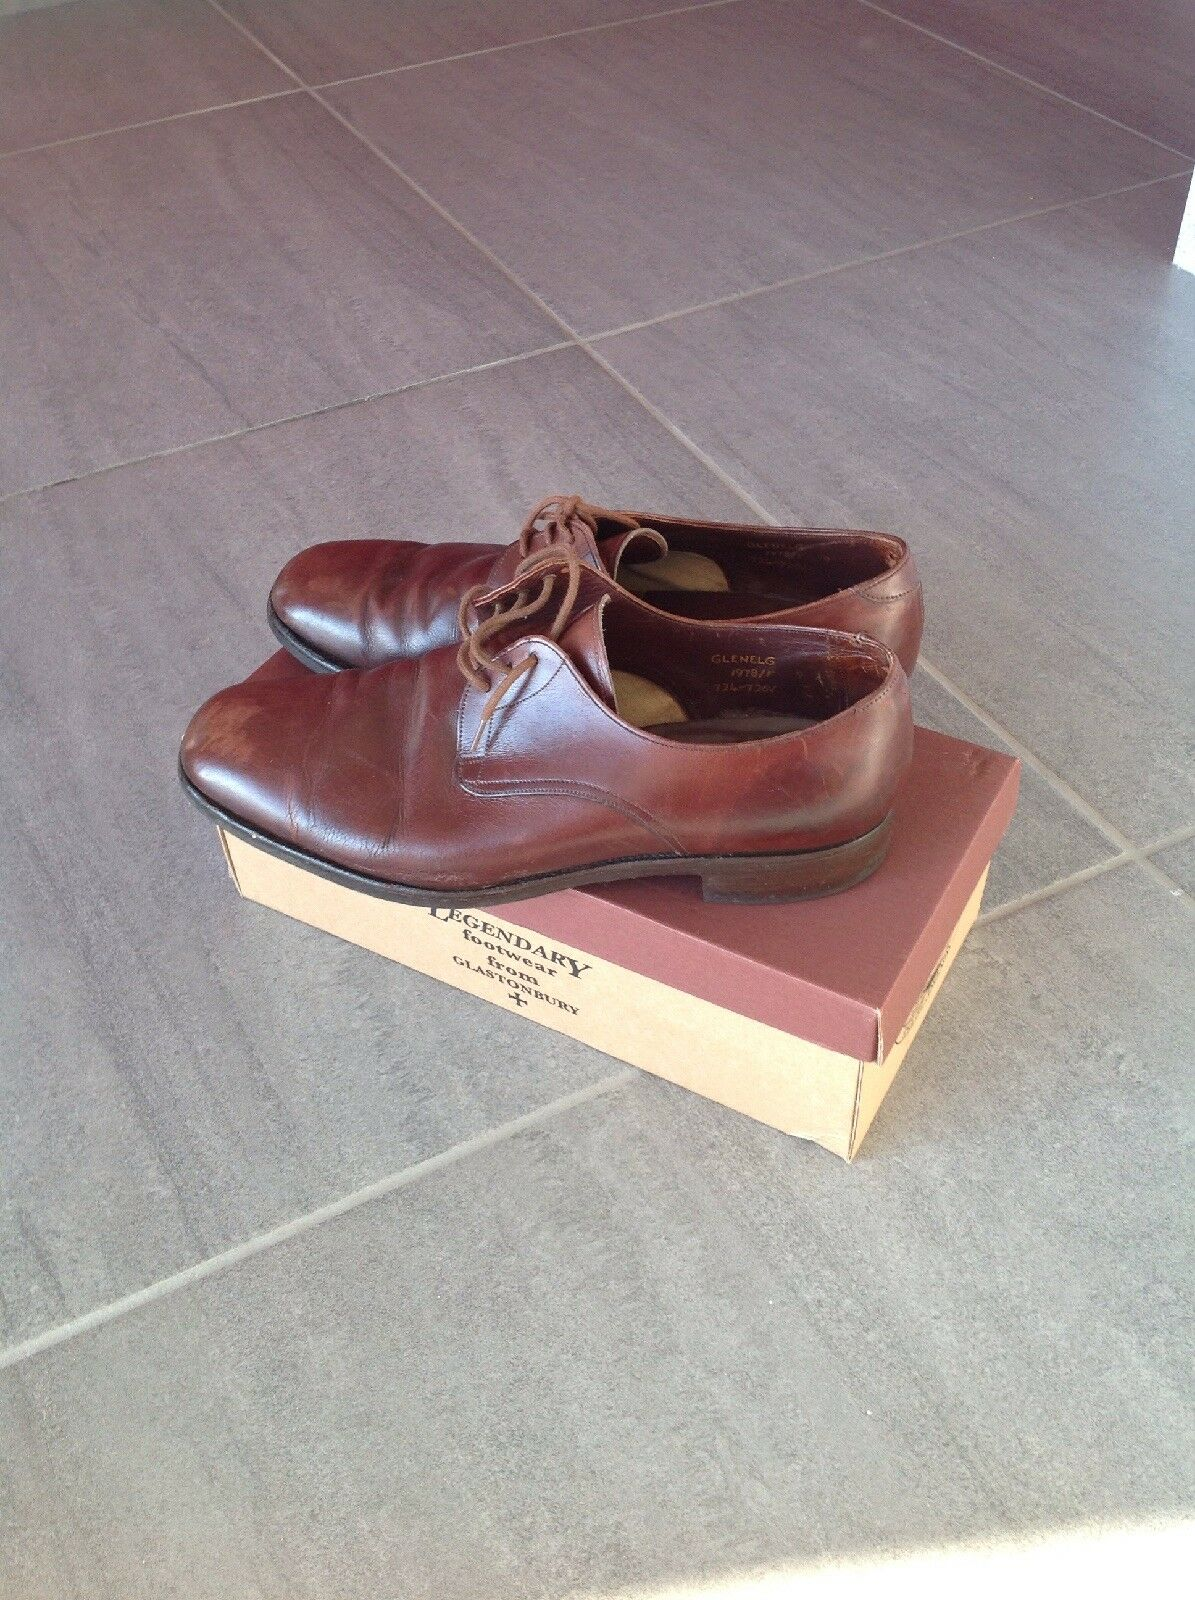 Draper Of Glastonbury Men's shoes